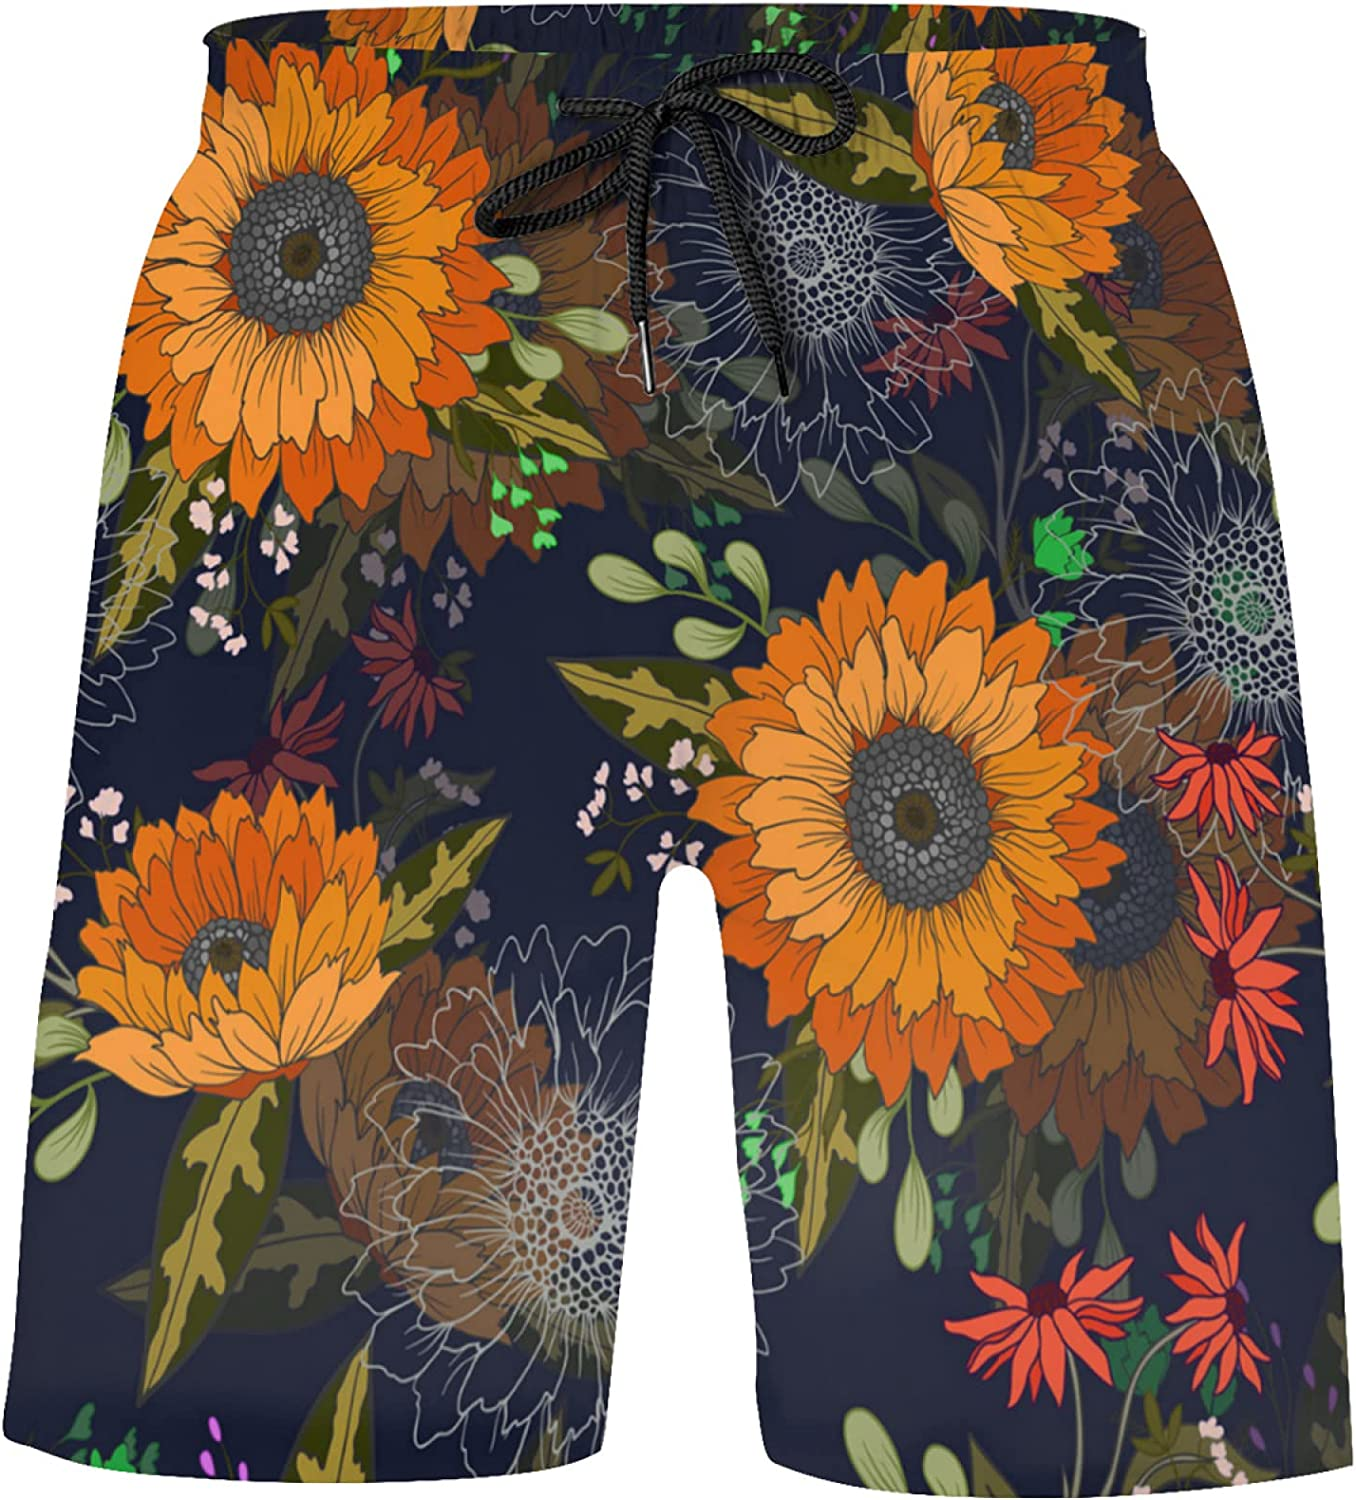 Sunflowers and Wild Flowers on Black Boys Bathing Suits Athletic Tennis Shorts Swim T